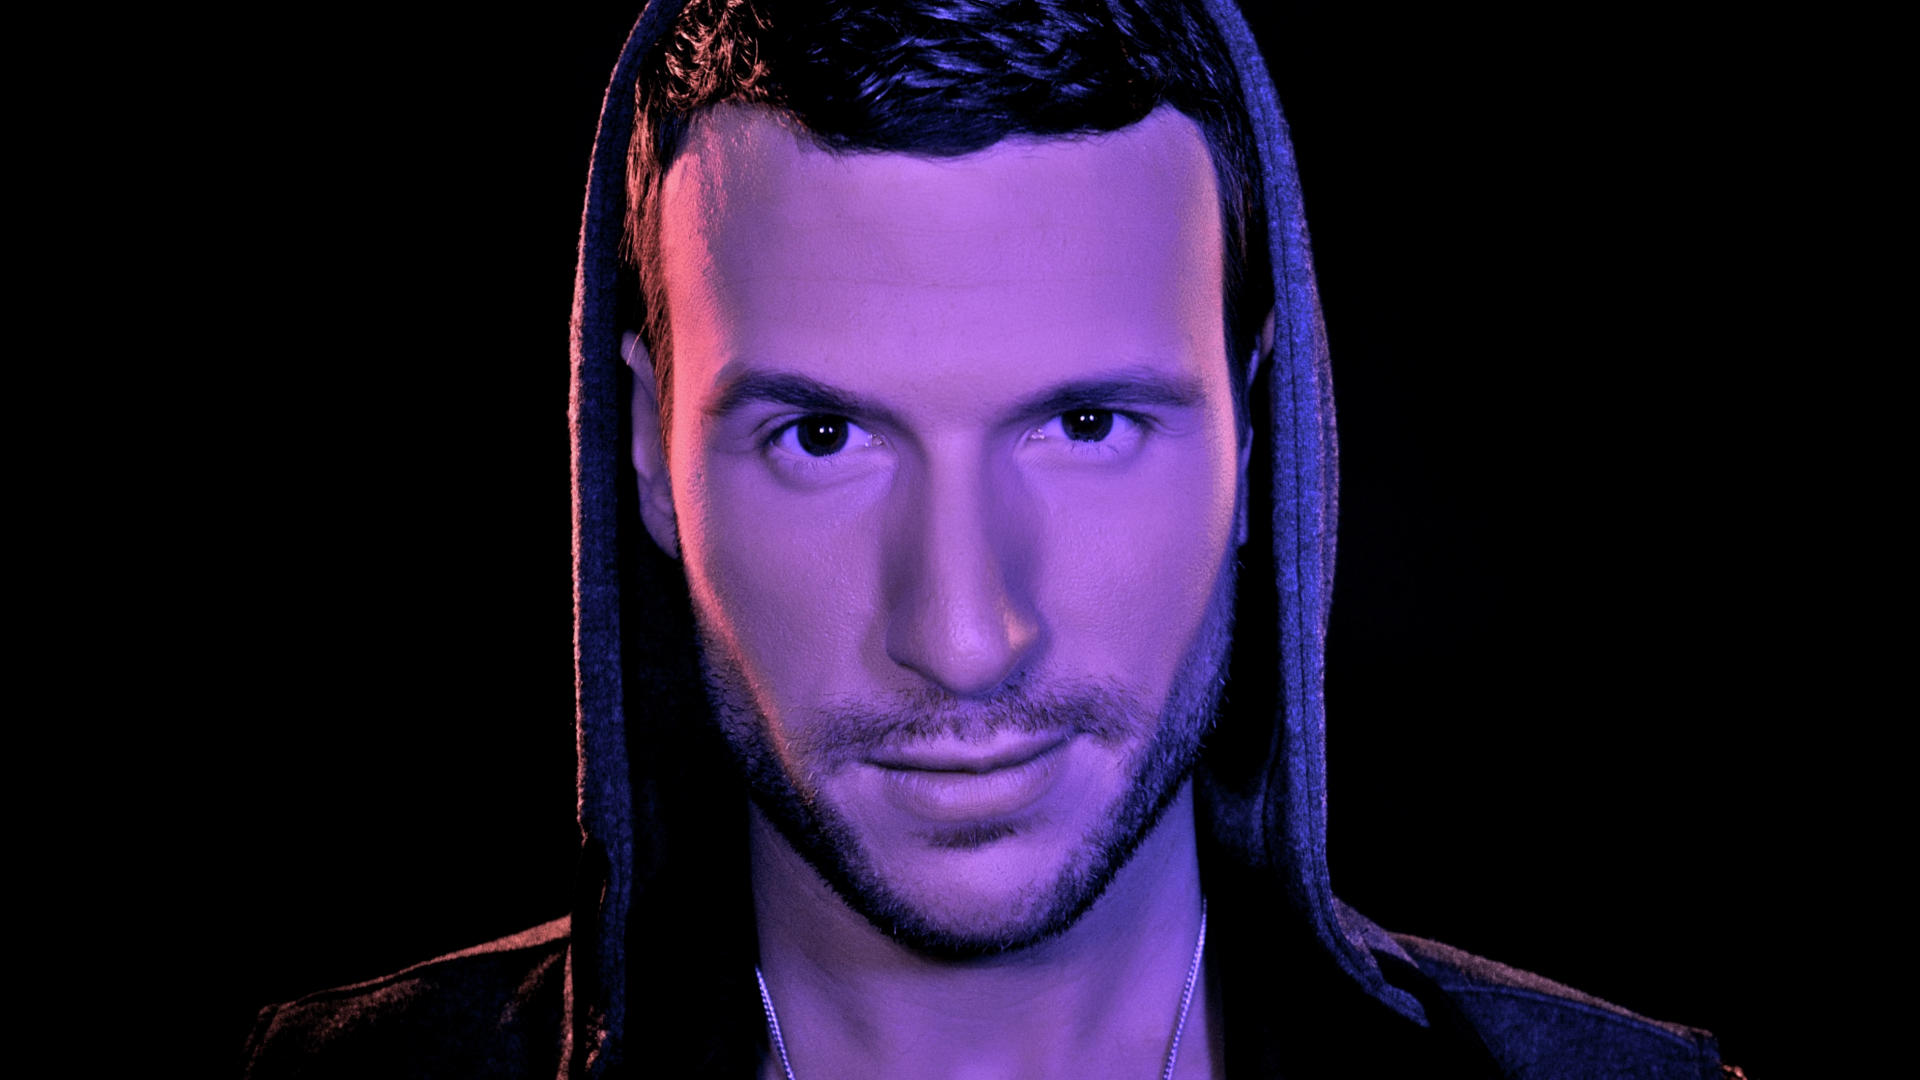 Starlight av Don Diablo